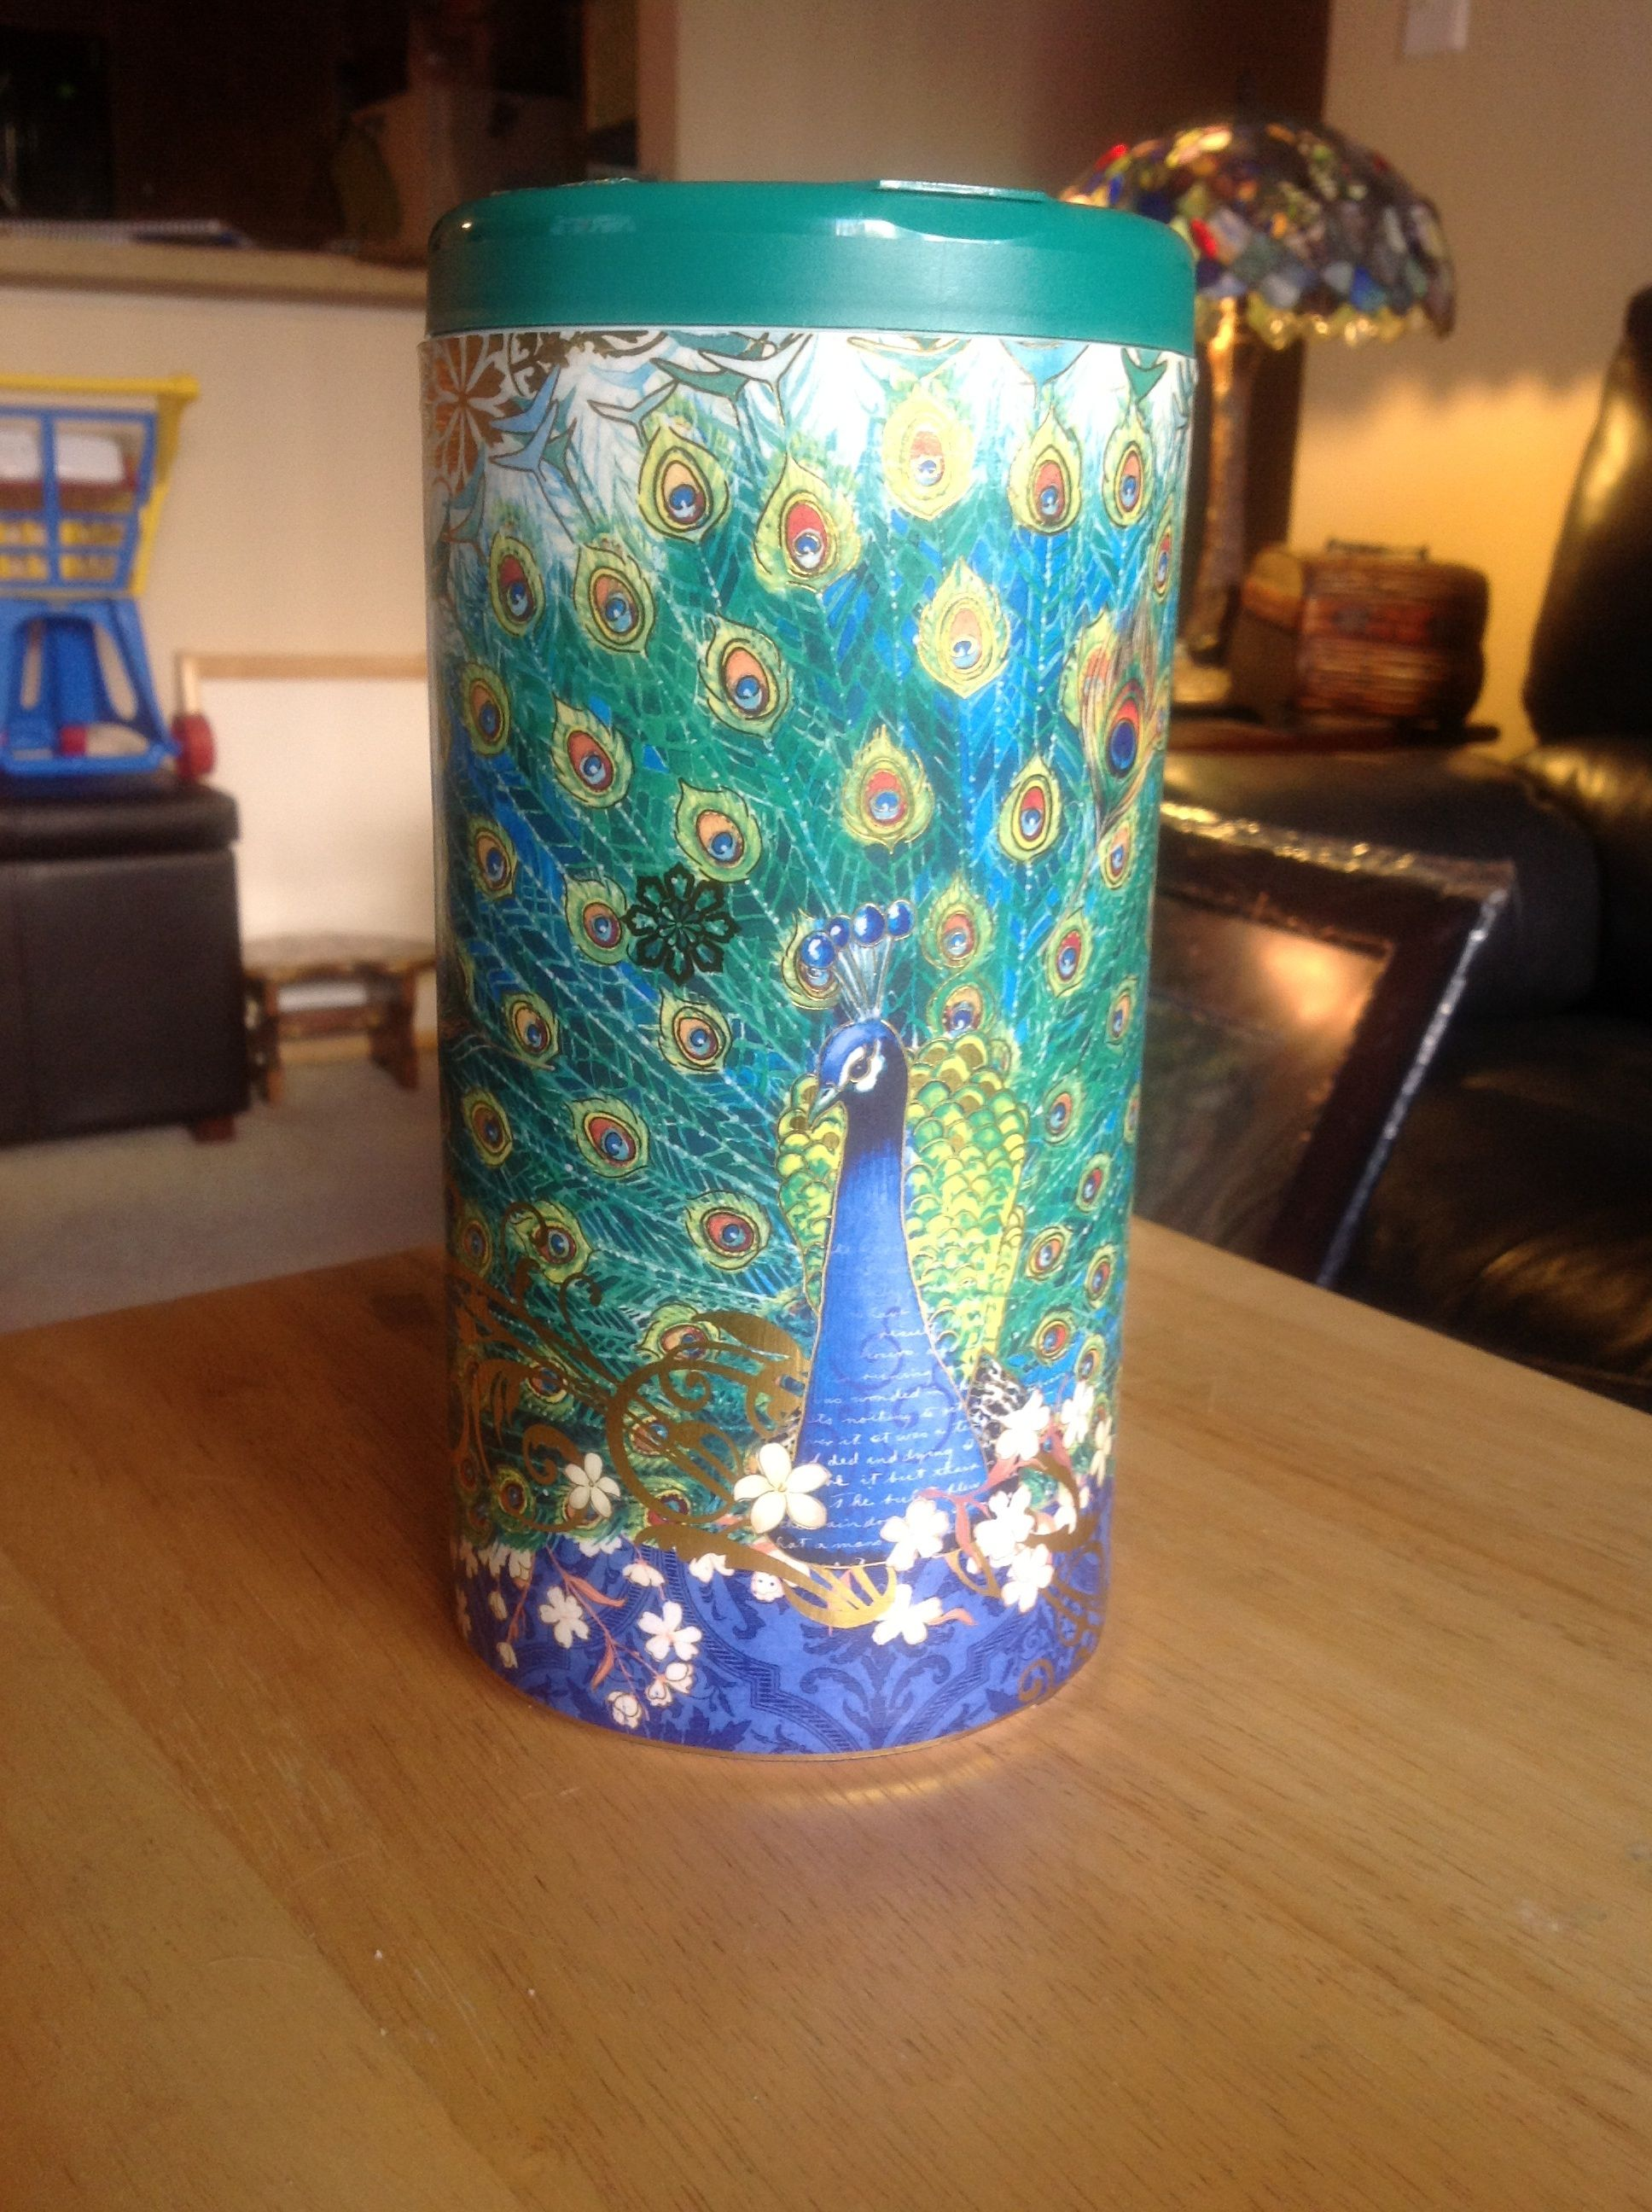 This is a Lysol wipes container that I decorated with a